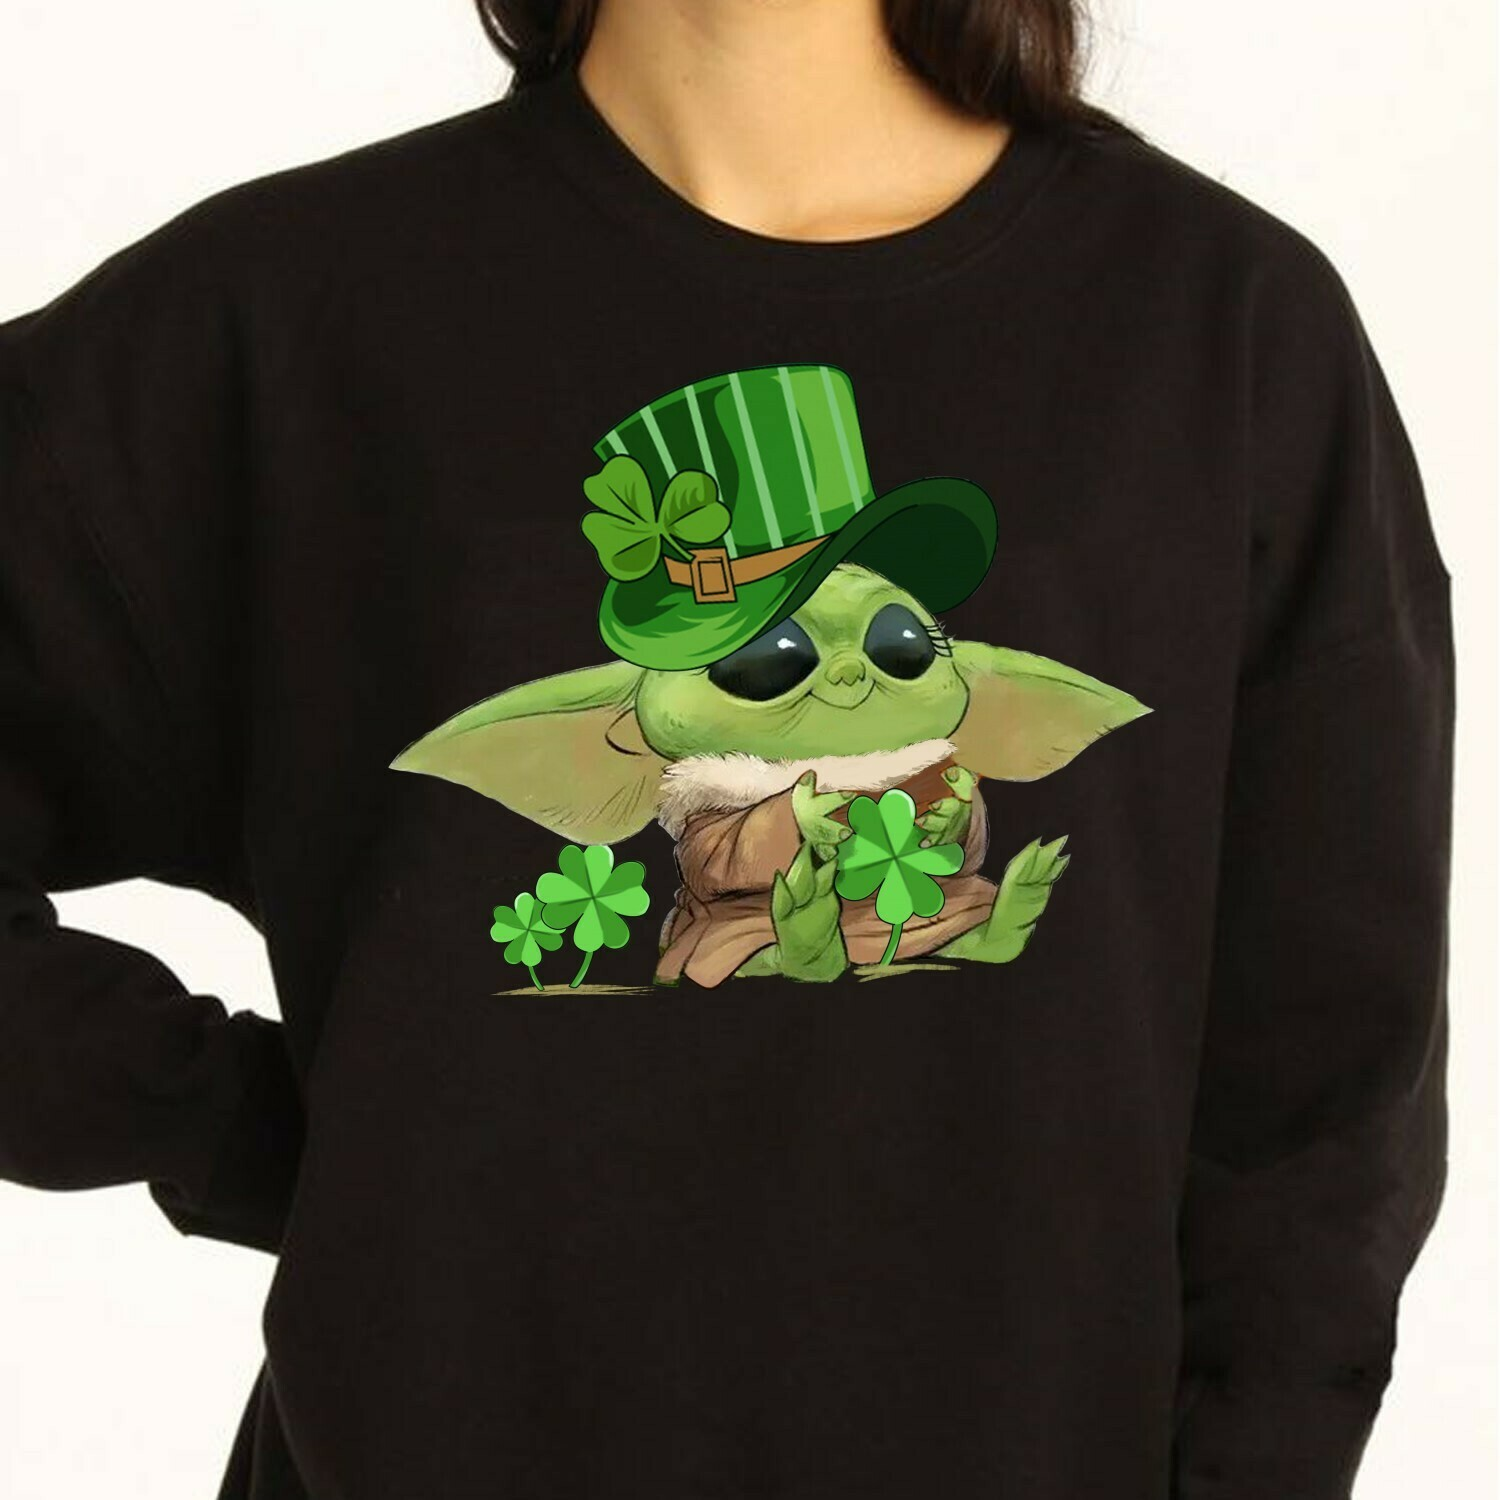 Baby Yoda Leprechauns hug Shamrock Peace Sign Flowery Heart St Patrick Day The Mandalorian with death Star Wars Movie  T-Shirt Hoodie Sweatshirt Sweater Tee Kids Youth Gifts Jolly Family Gifts